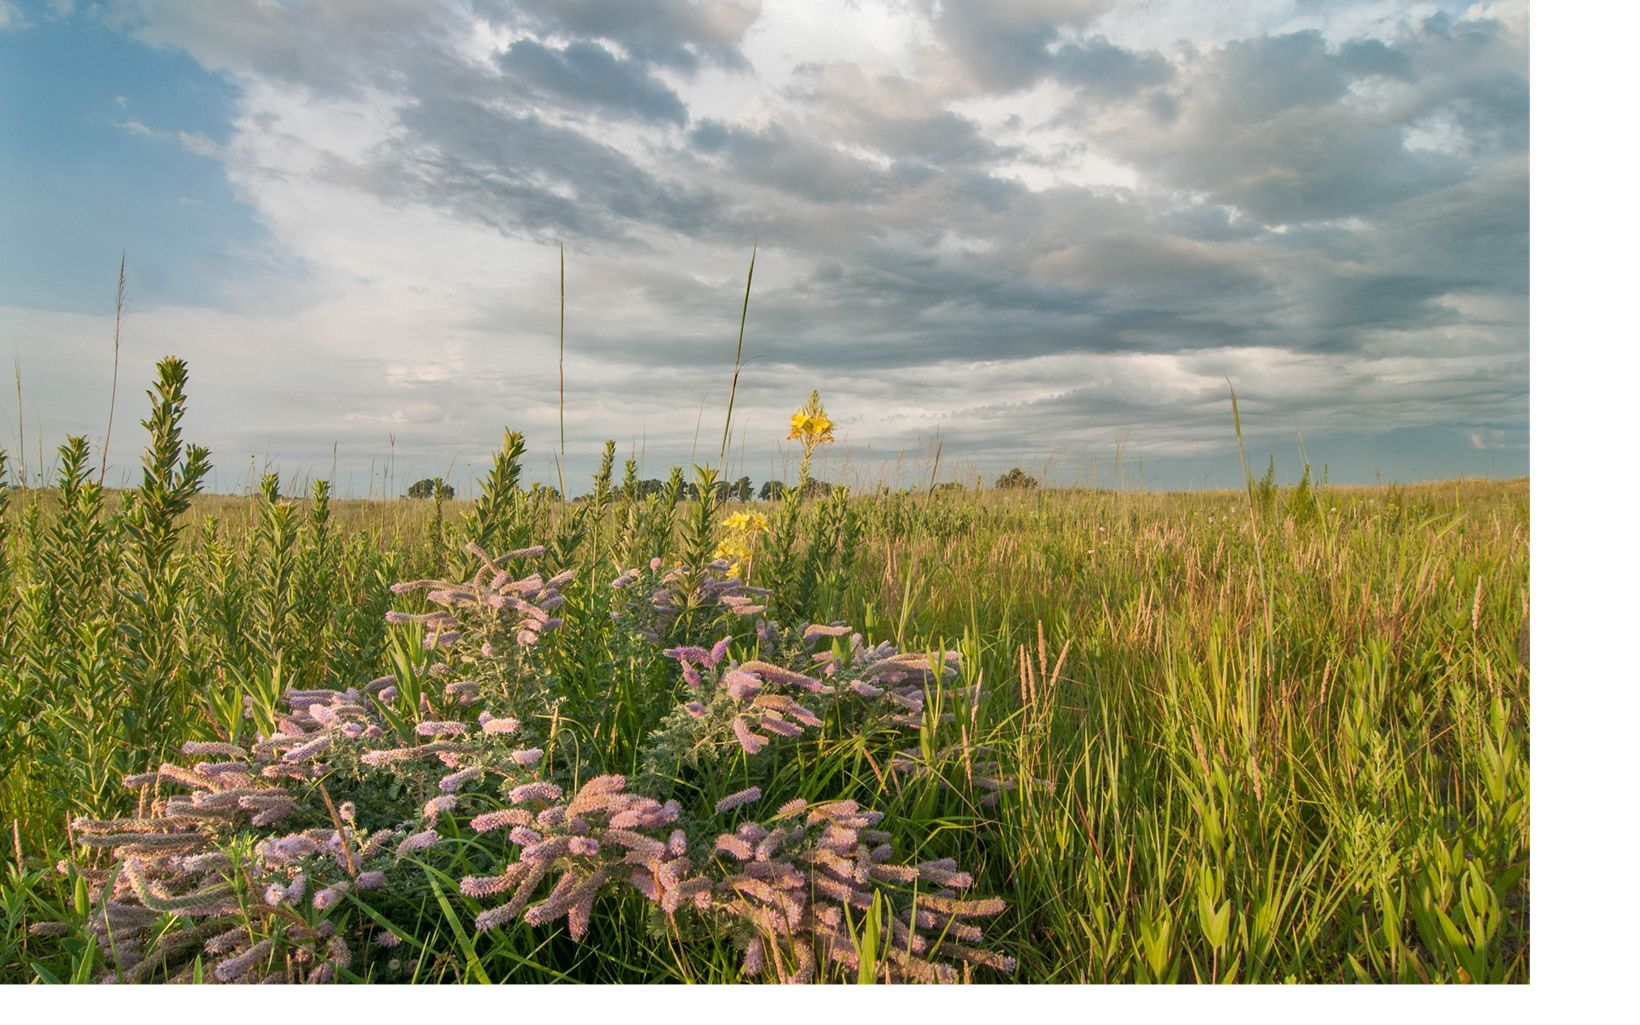 Silky prairie clover and restored sand prairie at The Nature Conservancy's Platte River Prairies, Nebraska.